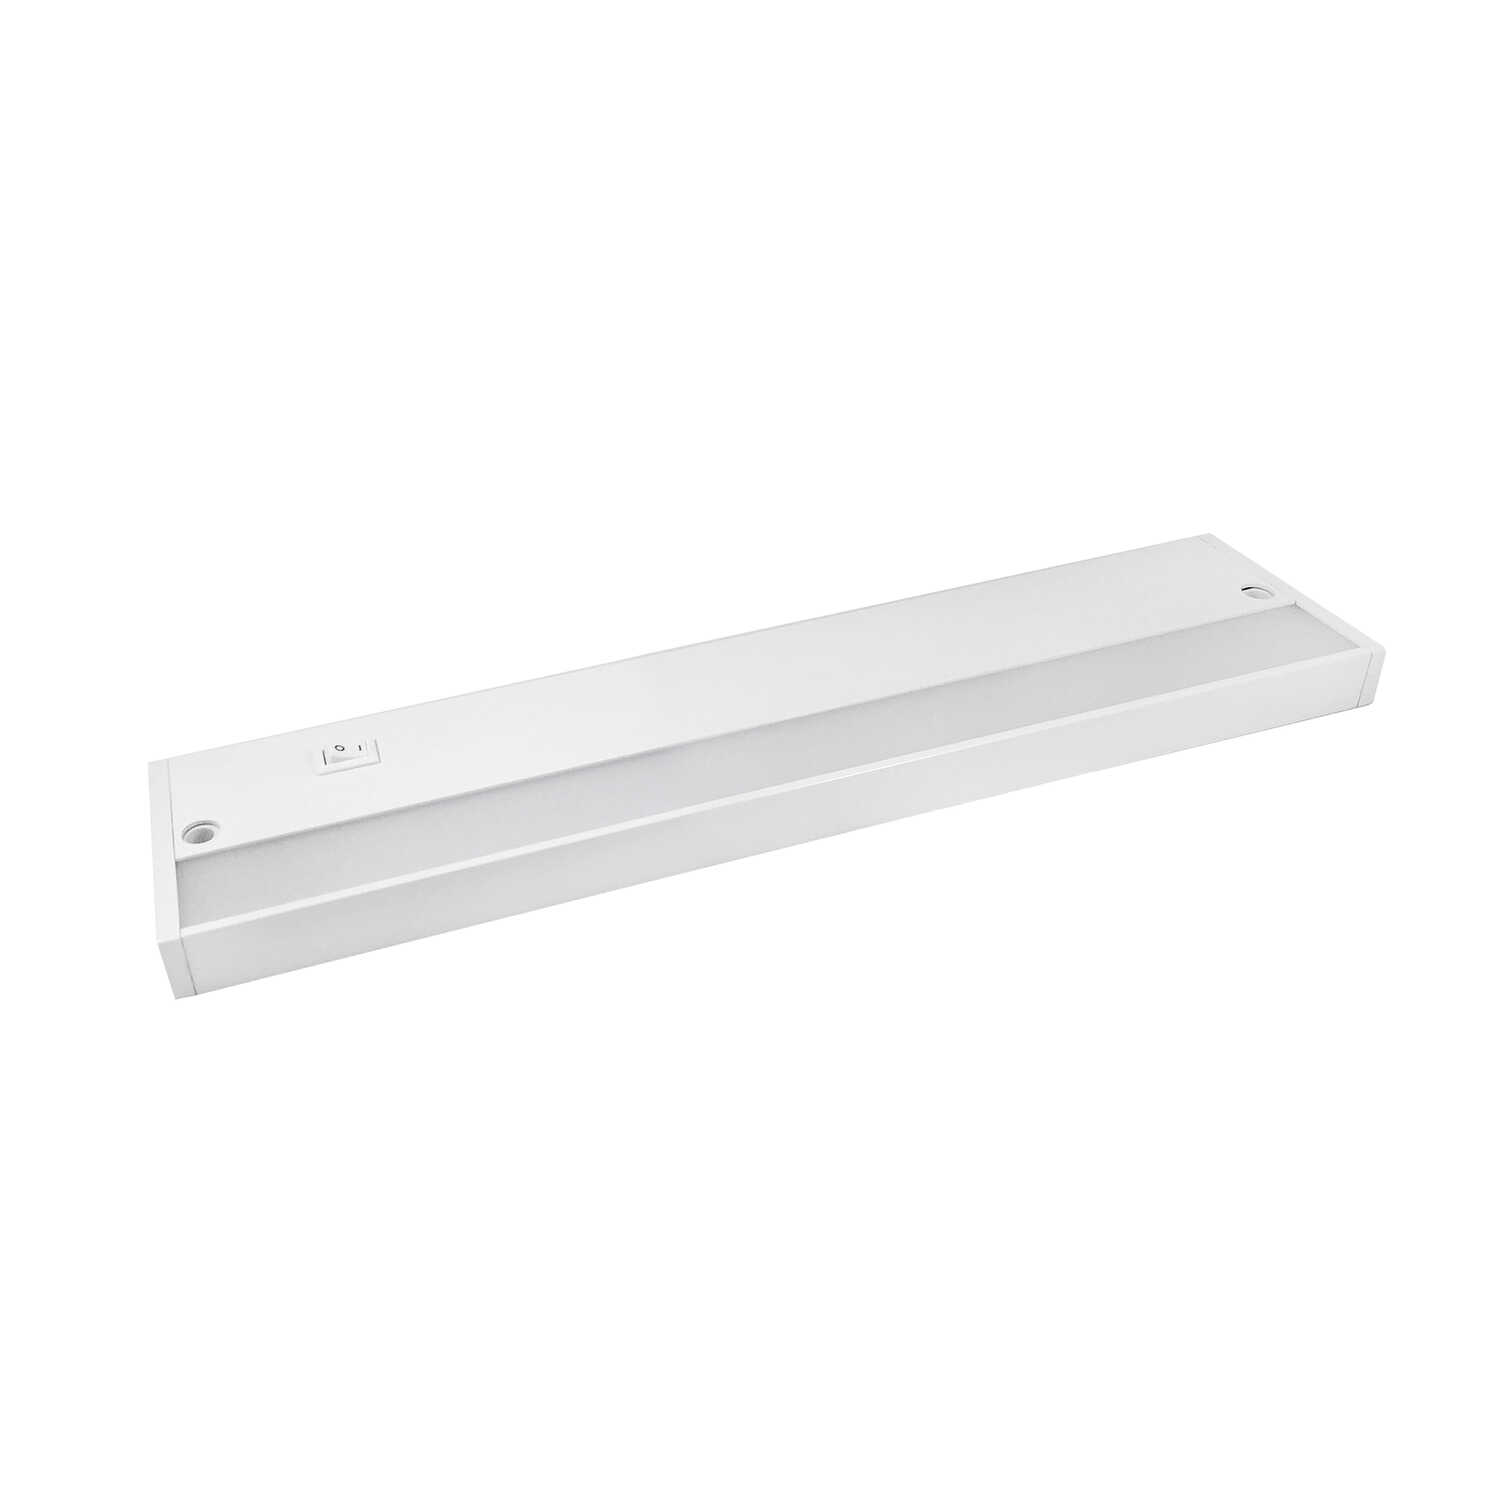 Amertac  12 in. L White  Plug-In  LED  Under Cabinet Light Strip  402 lumens